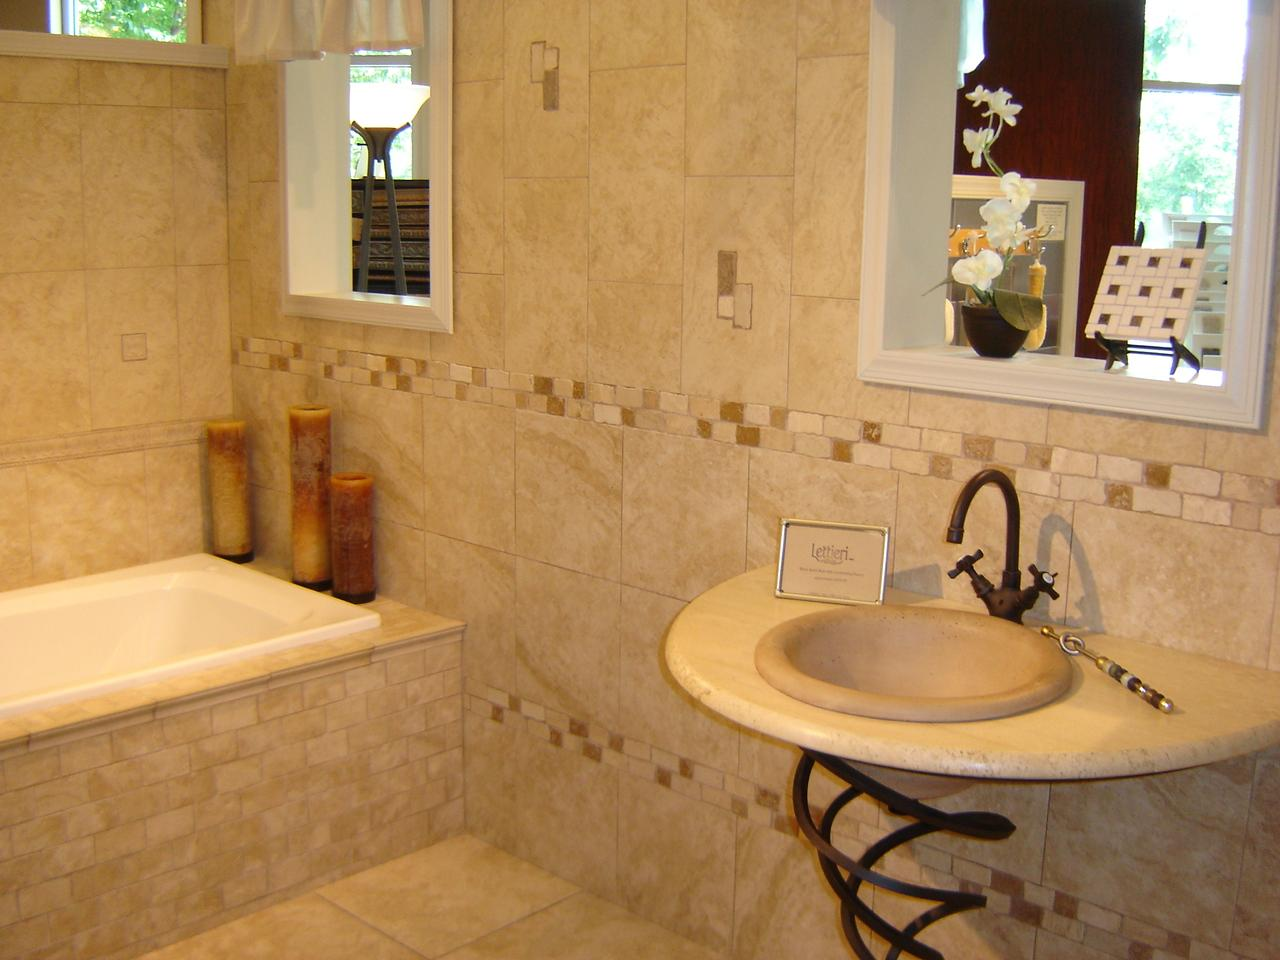 Bathroom tile design ideas for Images of bathroom tile ideas